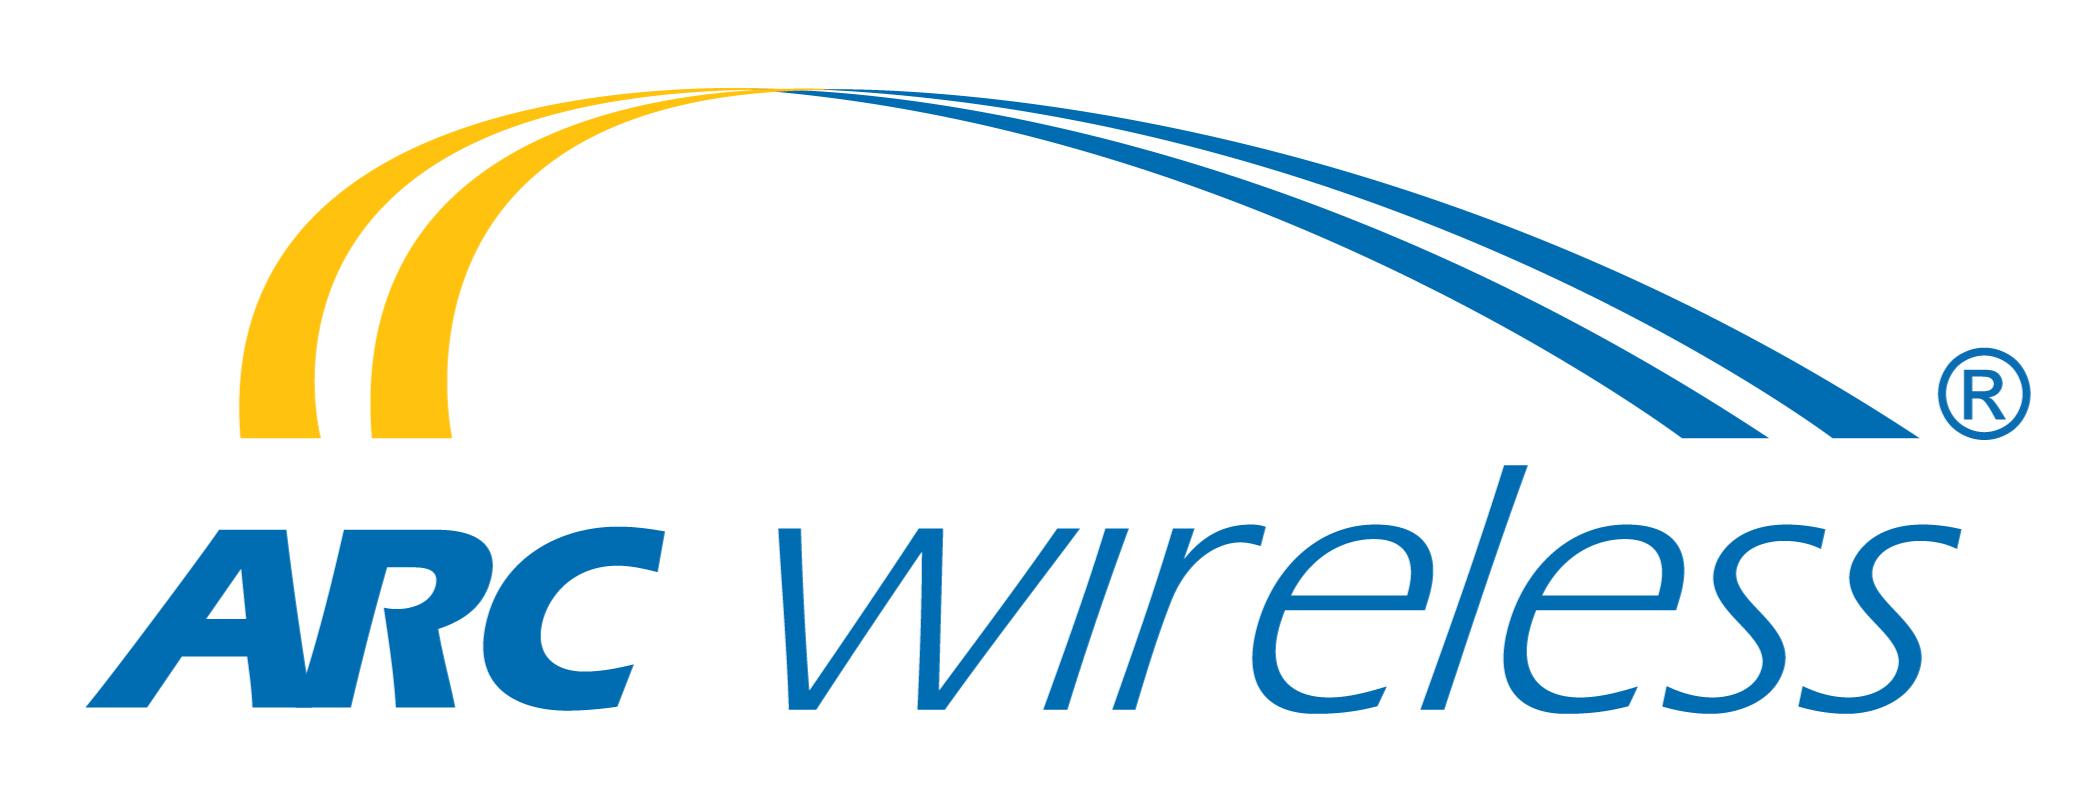 Arc Wireless is LLC prides itself on providing innovative and efficient antenna designs for the wireless industry.